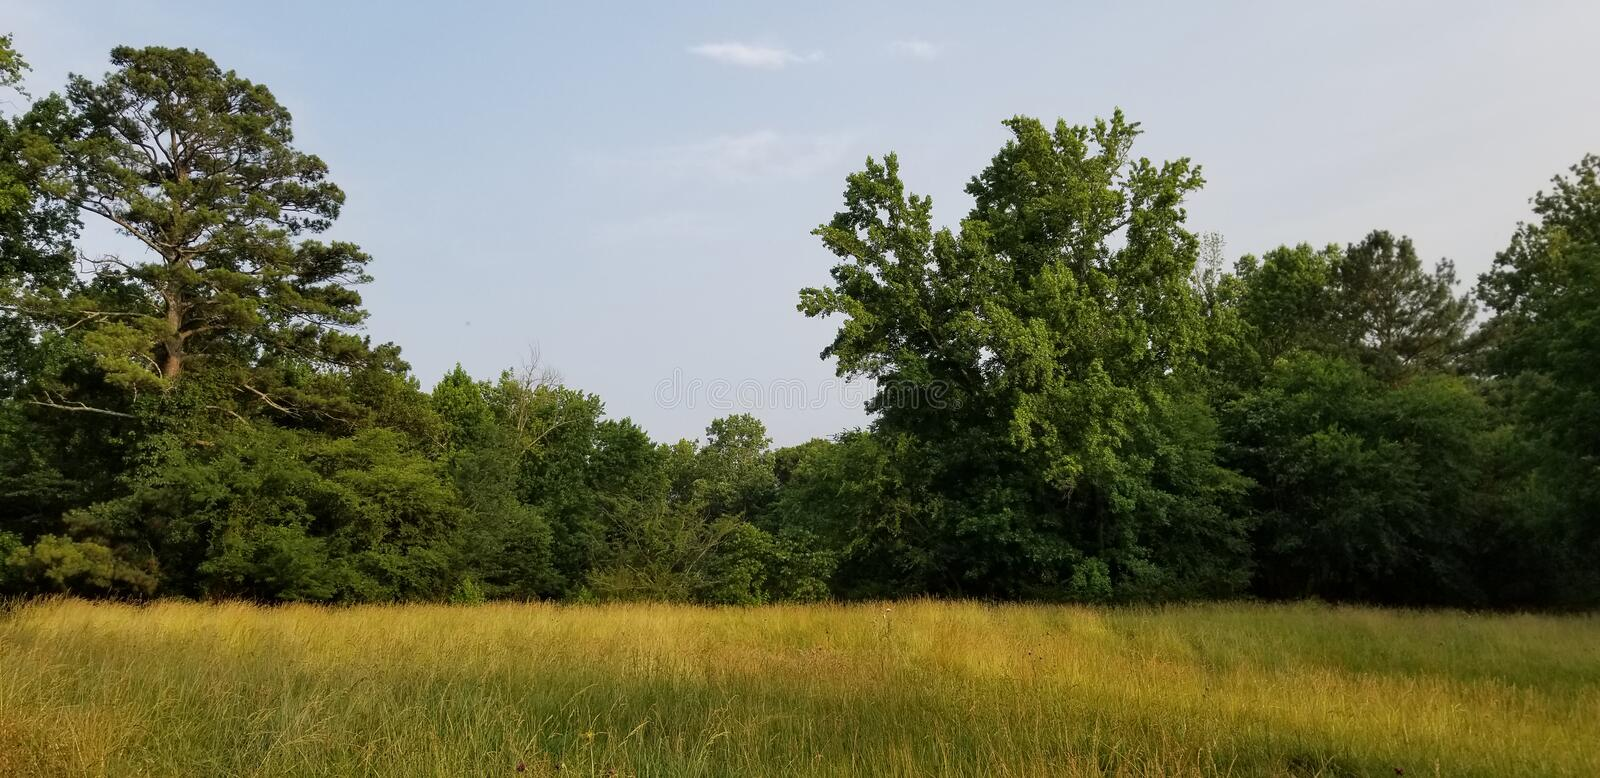 Lone tree in a sunlit meadow - North Georgia - McDaniel Farm in Duluth royalty free stock images